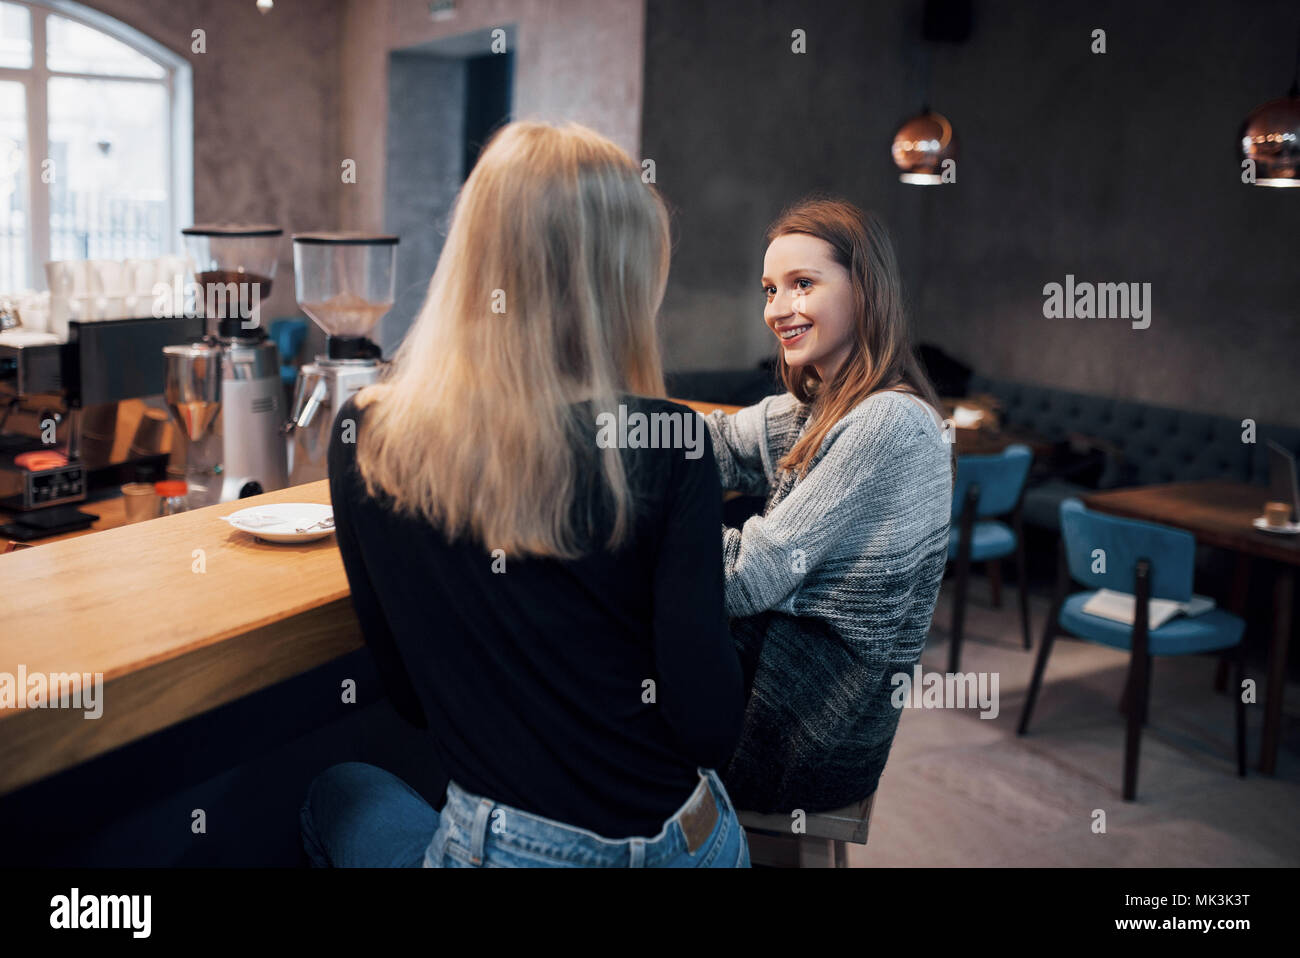 Two friends enjoying coffee together in a coffee shop as they sit at a table chatting - Stock Image